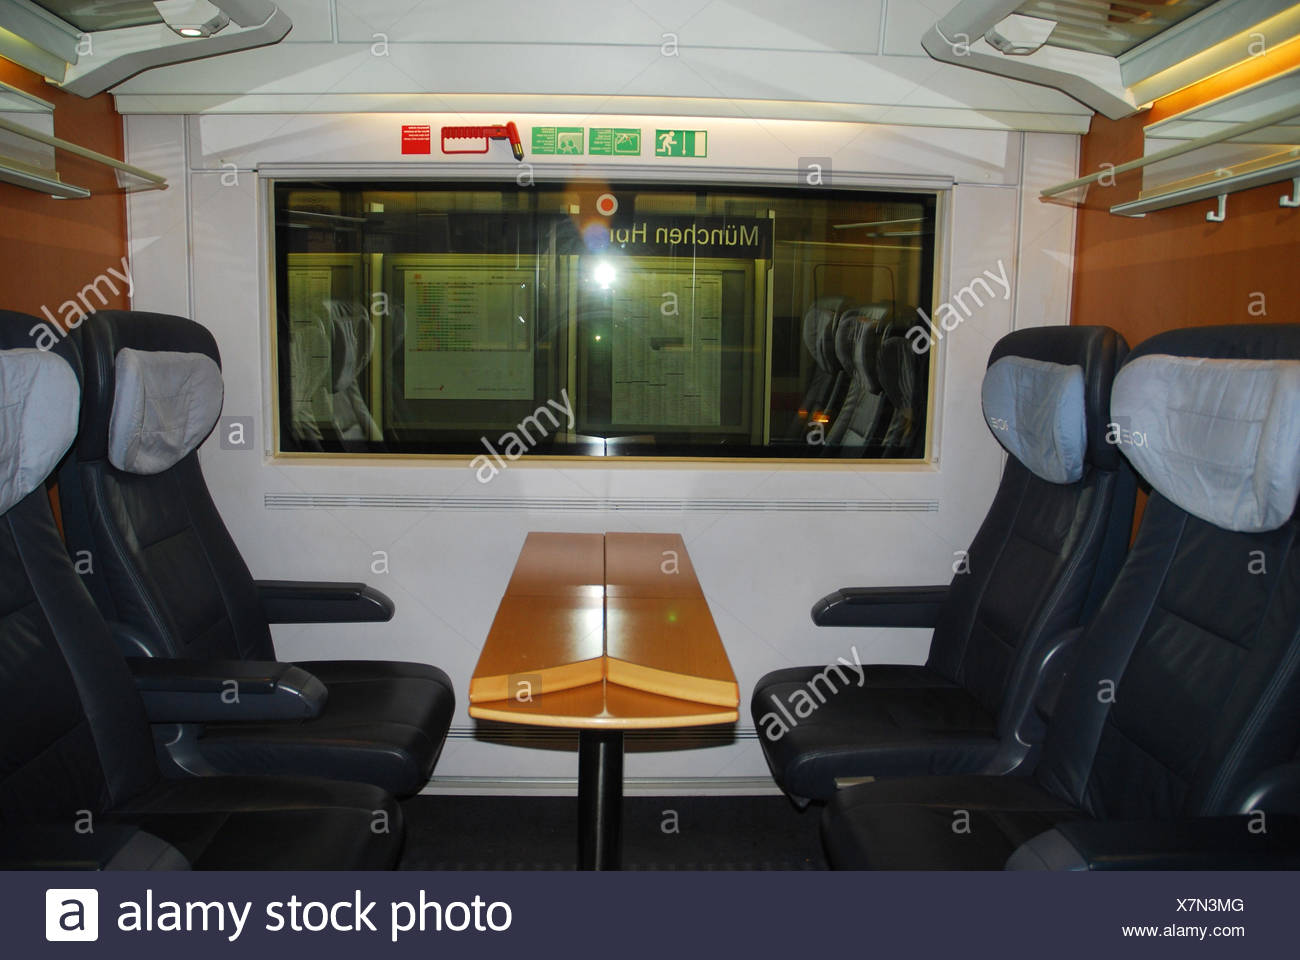 Intercity express compartment, 1st class, no property release, - Stock Image